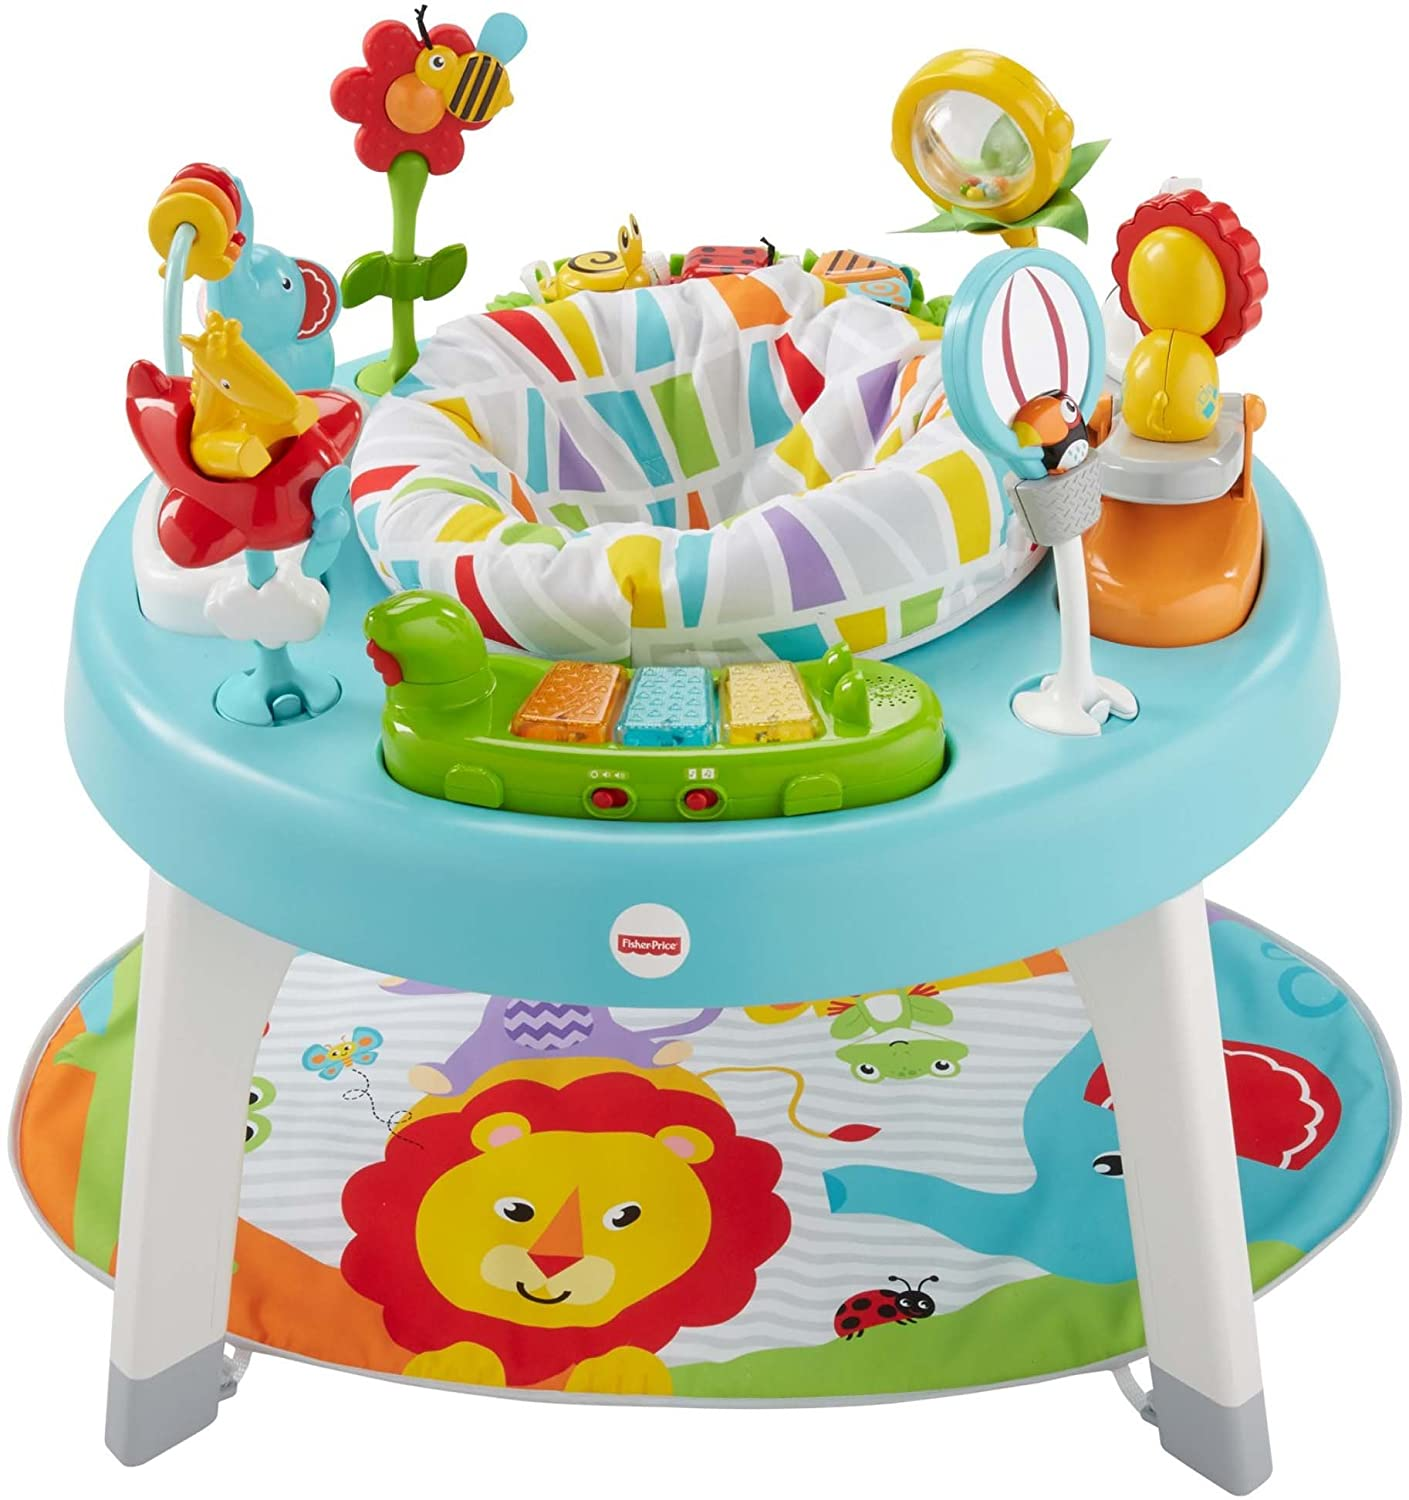 Amazon.com : Fisher-Price 3-in-1 Sit-to-Stand Activity Center, Jazzy ...